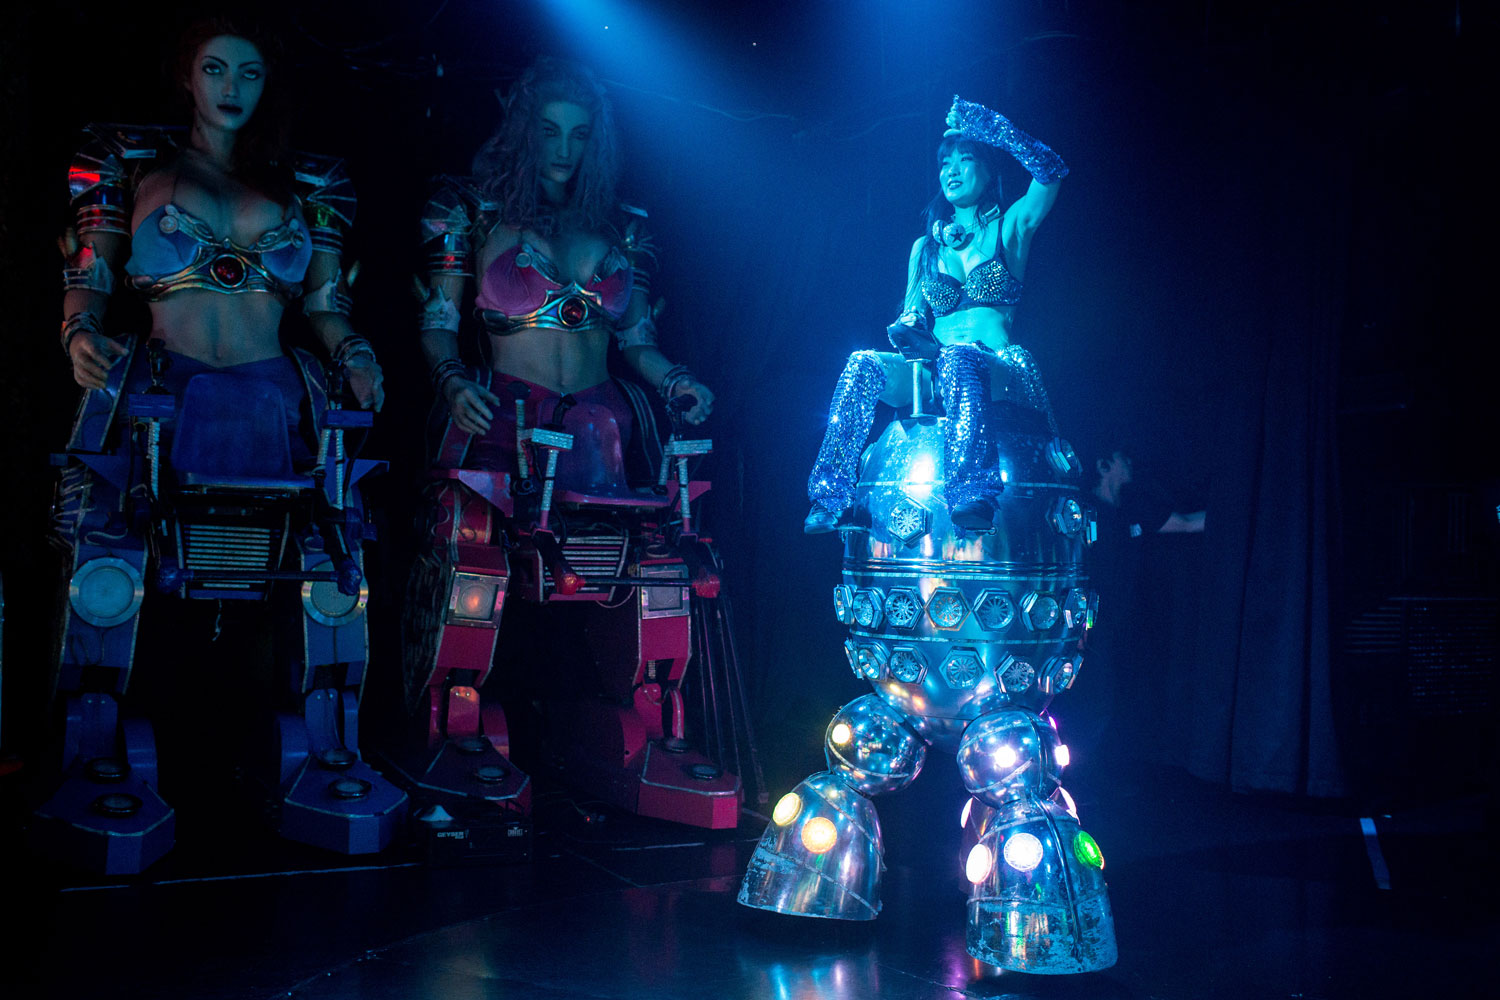 A dancer rides a robotic vehicle during a show at The Robot Restaurant on June 29, 2014 in Tokyo.